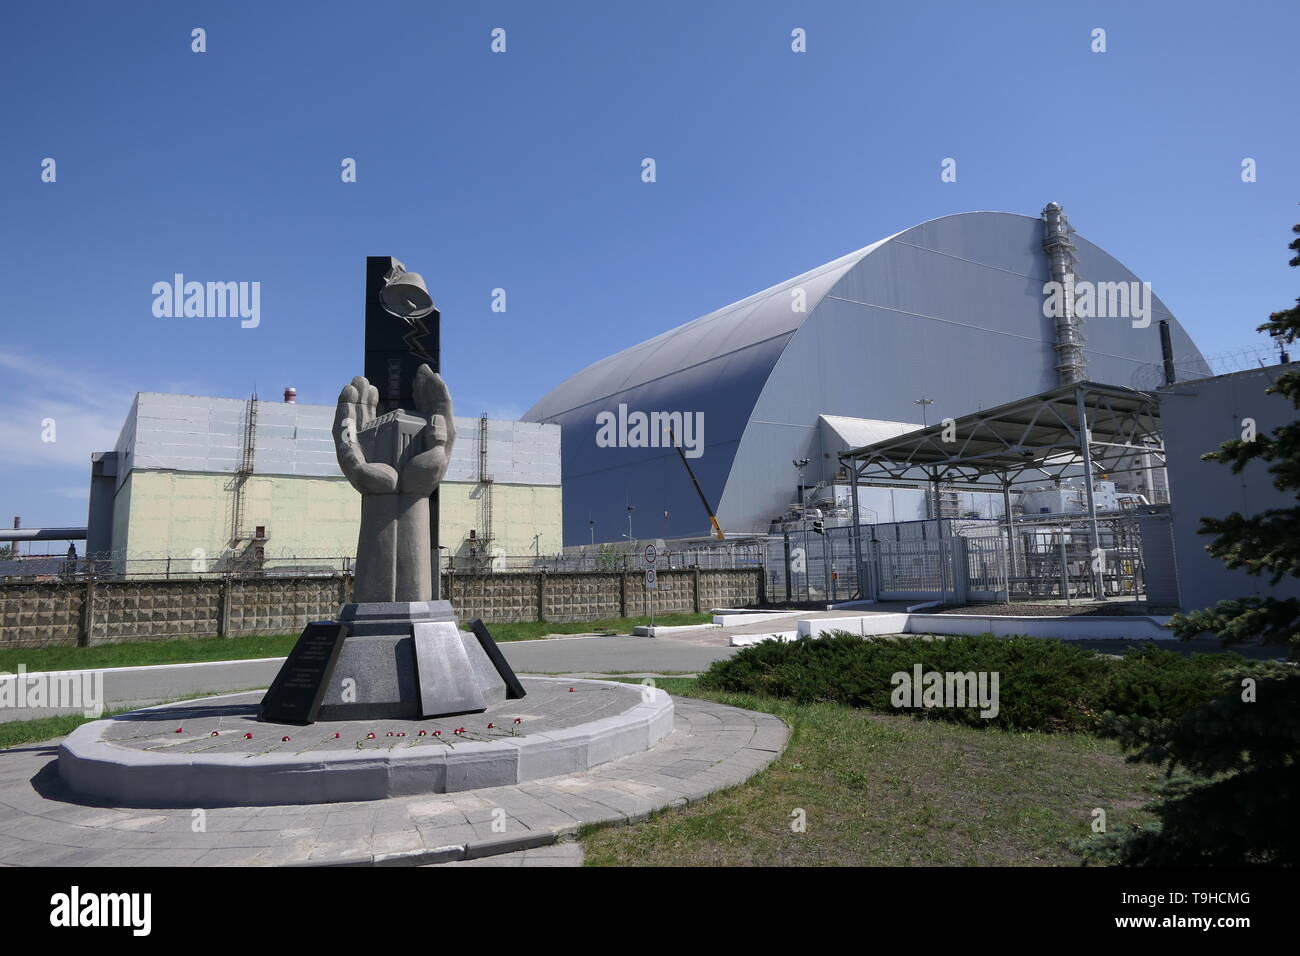 View of the destroyed Reactor 4 and the Memorial for the Chernobyl liquidators, Chernobyl exclusion zone, Ukraine - Stock Image